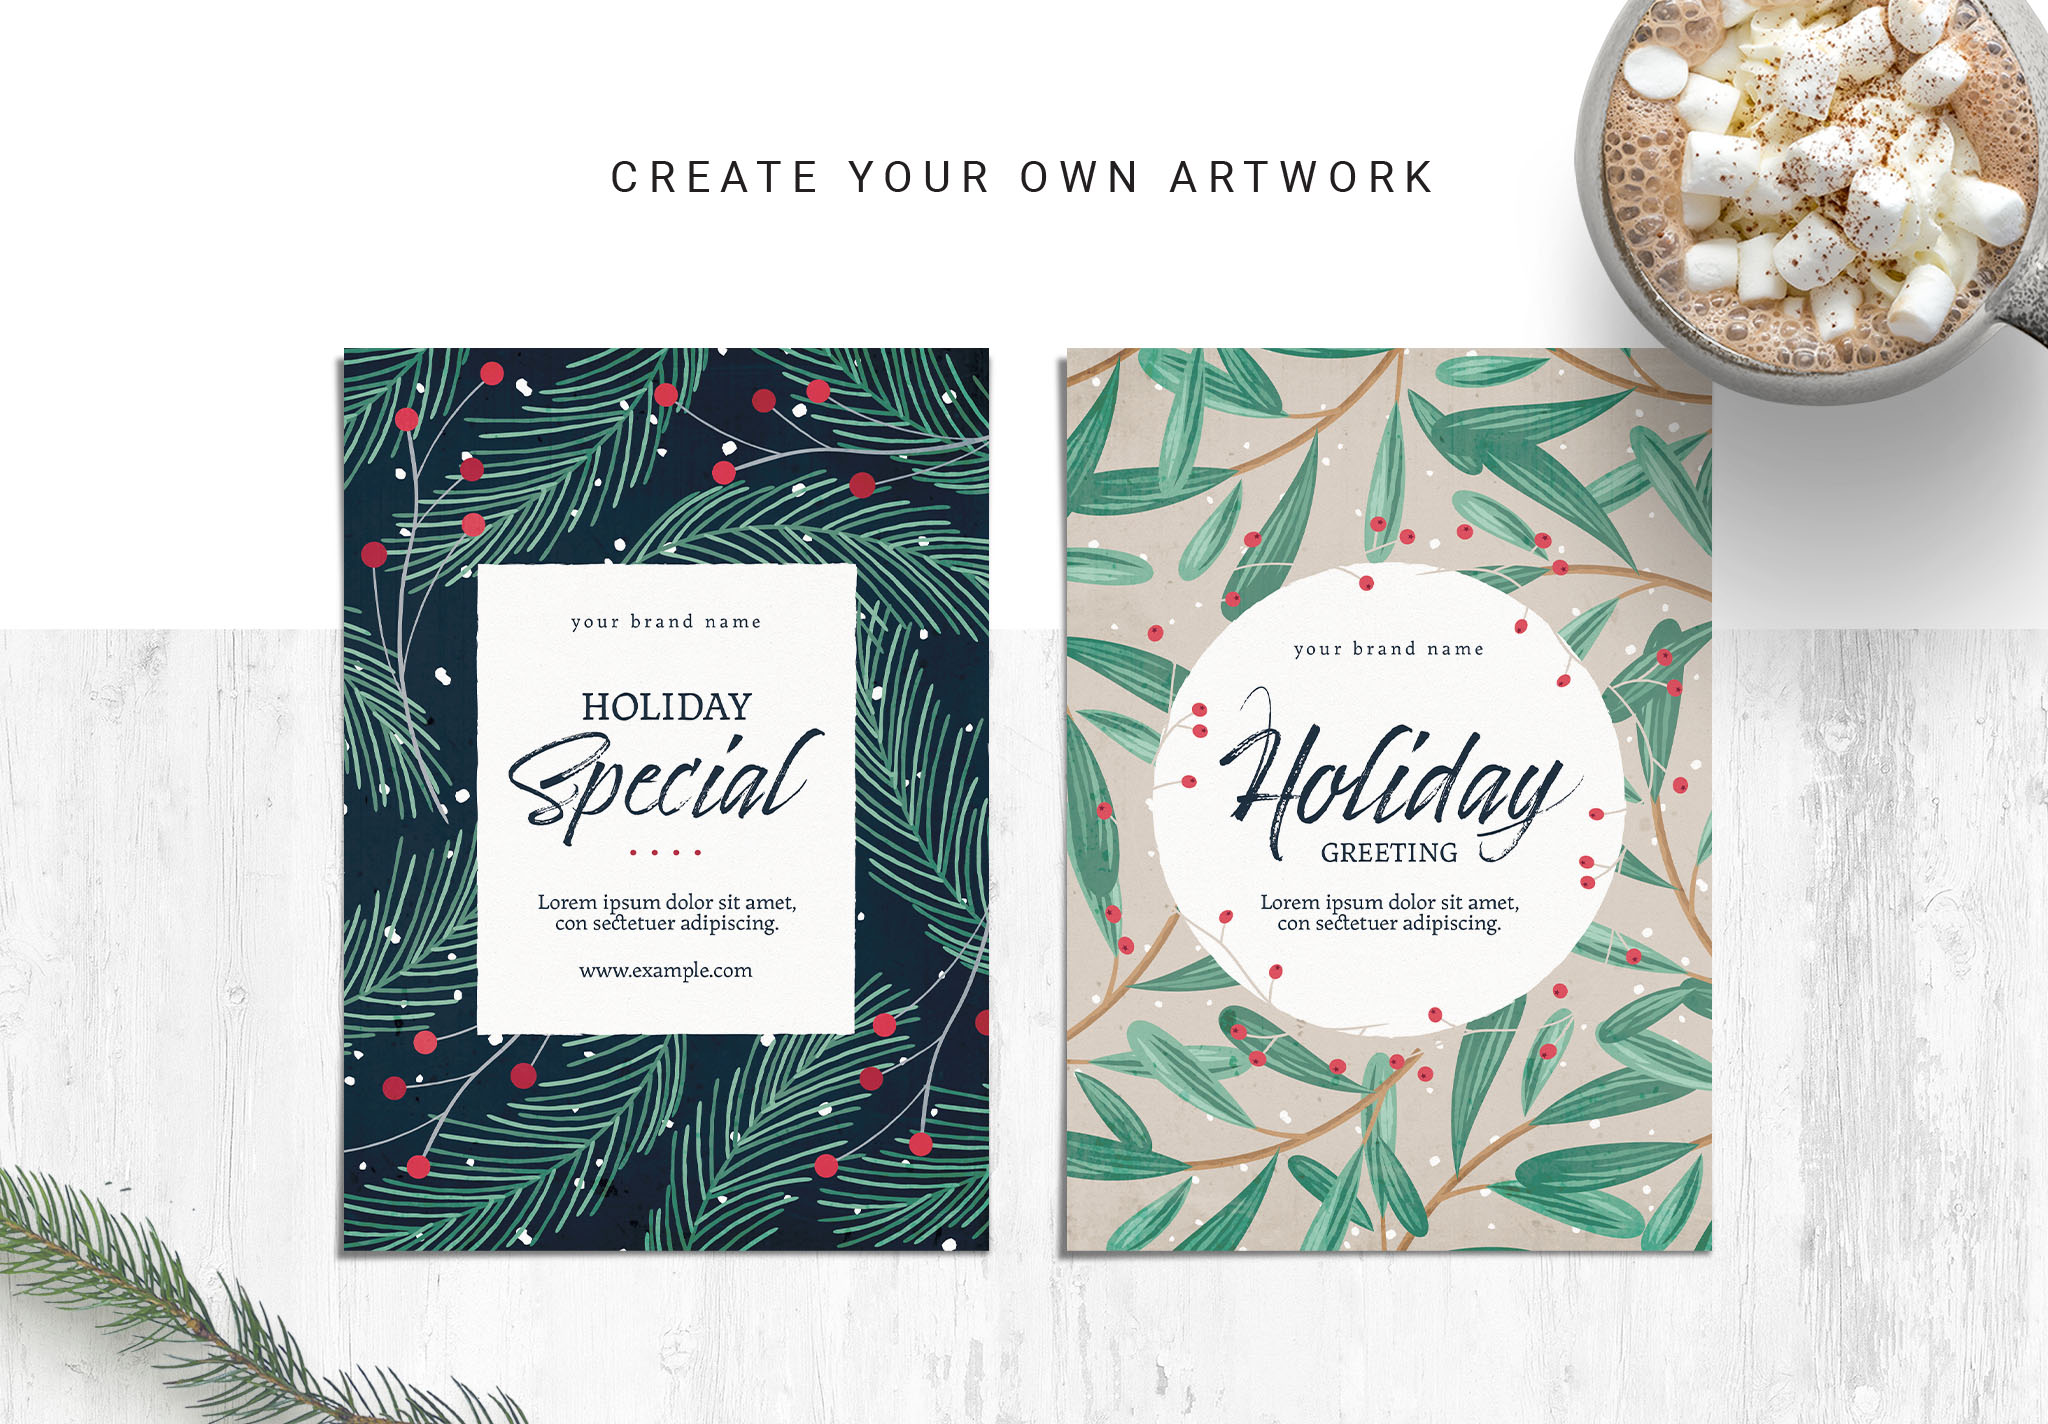 Christmas Postcard / Invitation Templates for Photoshop & Illustrator